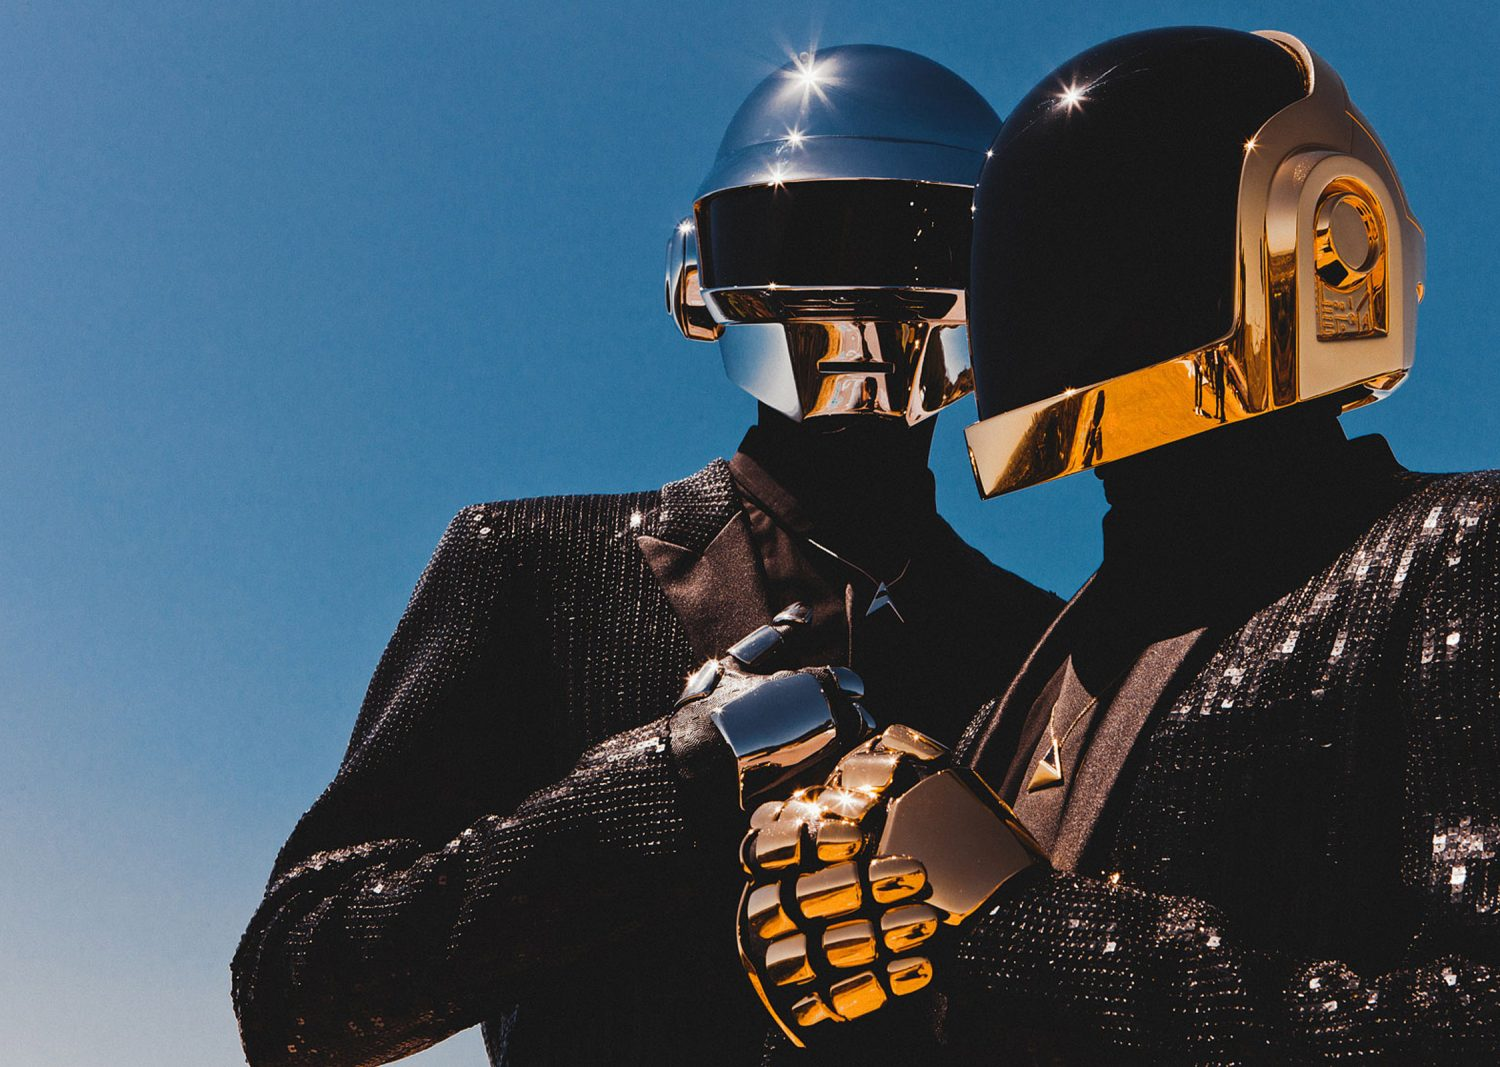 French electronic music duo Daft Punk random access memories